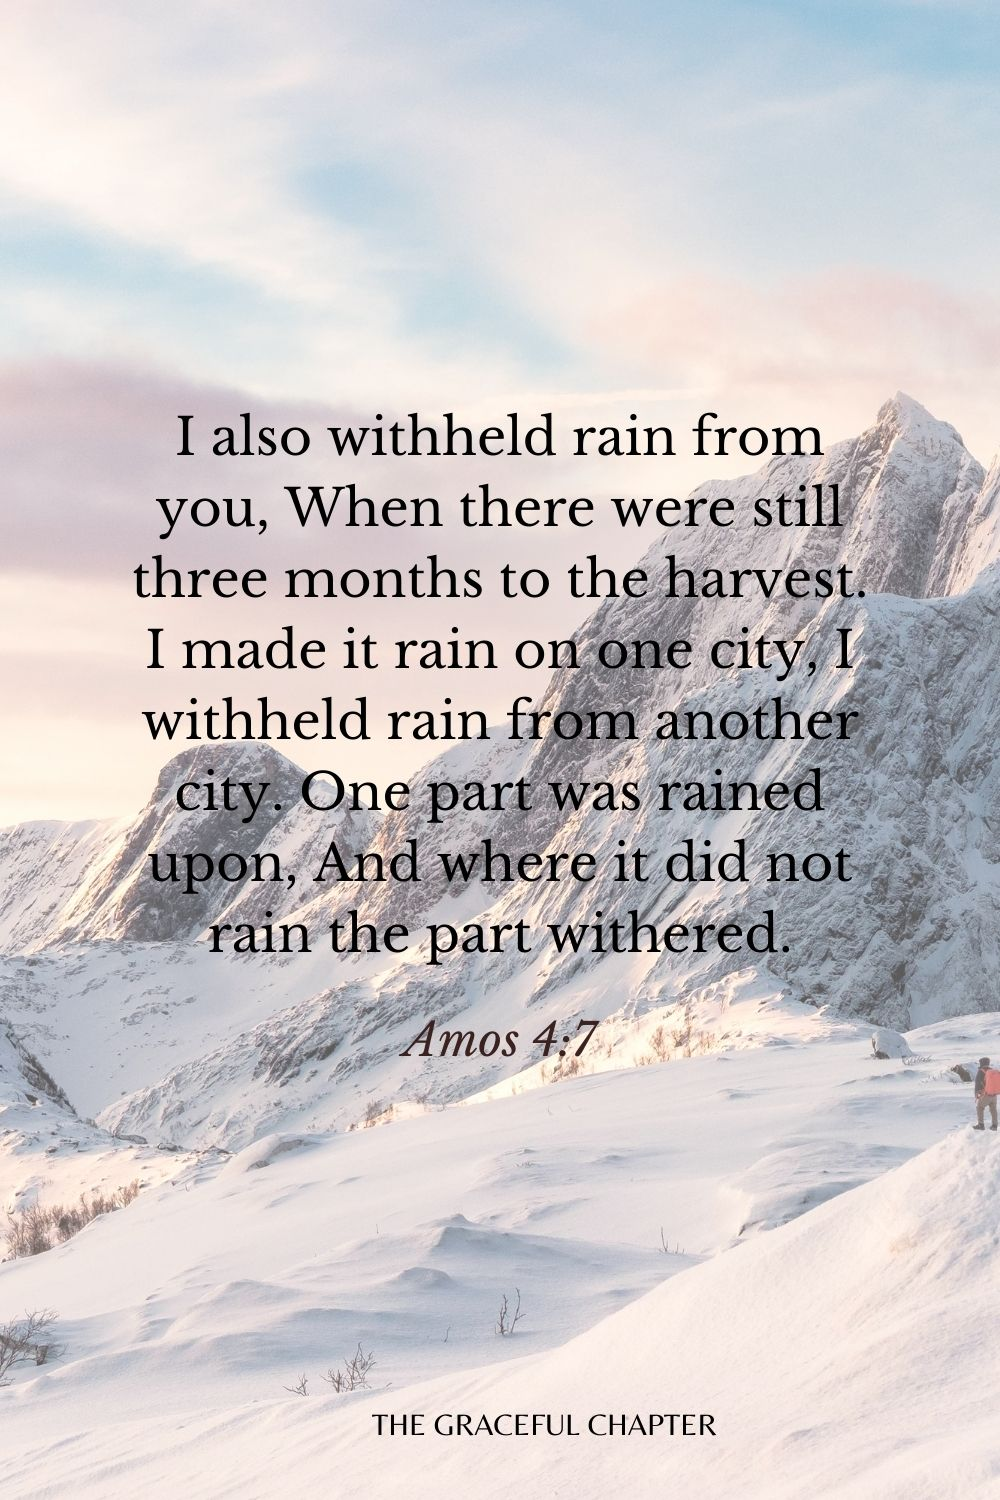 I also withheld rain from you, When there were still three months to the harvest. I made it rain on one city, I withheld rain from another city. One part was rained upon, And where it did not rain the part withered. Amos 4:7